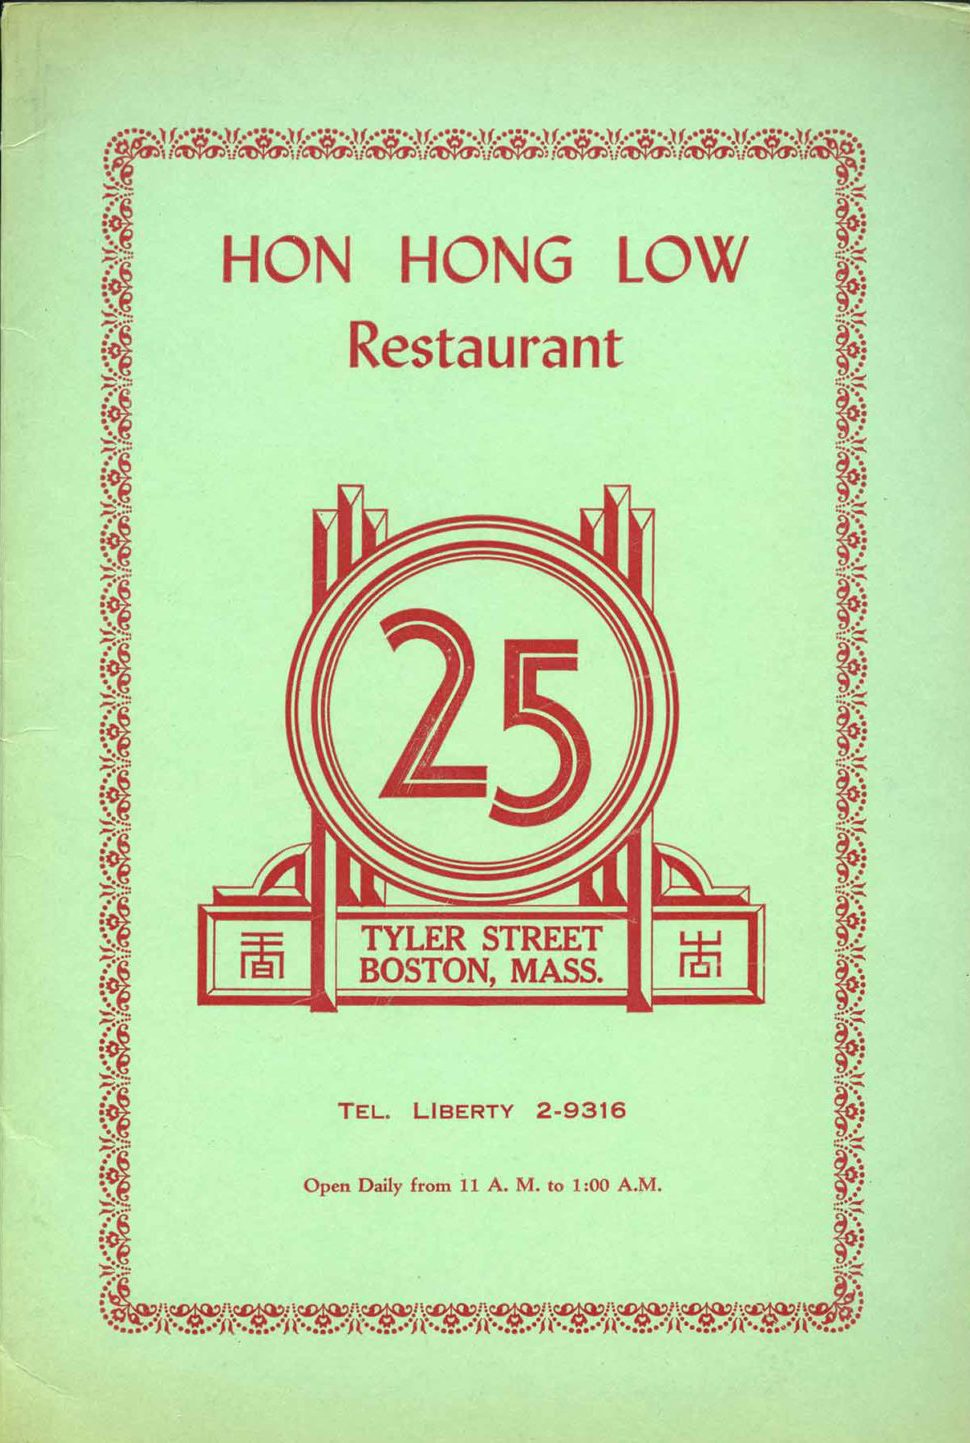 Menu cover, Hon Hong Low restaurant, 25 Tyler Street, c1940 / 泰勒街25號Hon Hong Low 餐館菜單封面,1940年